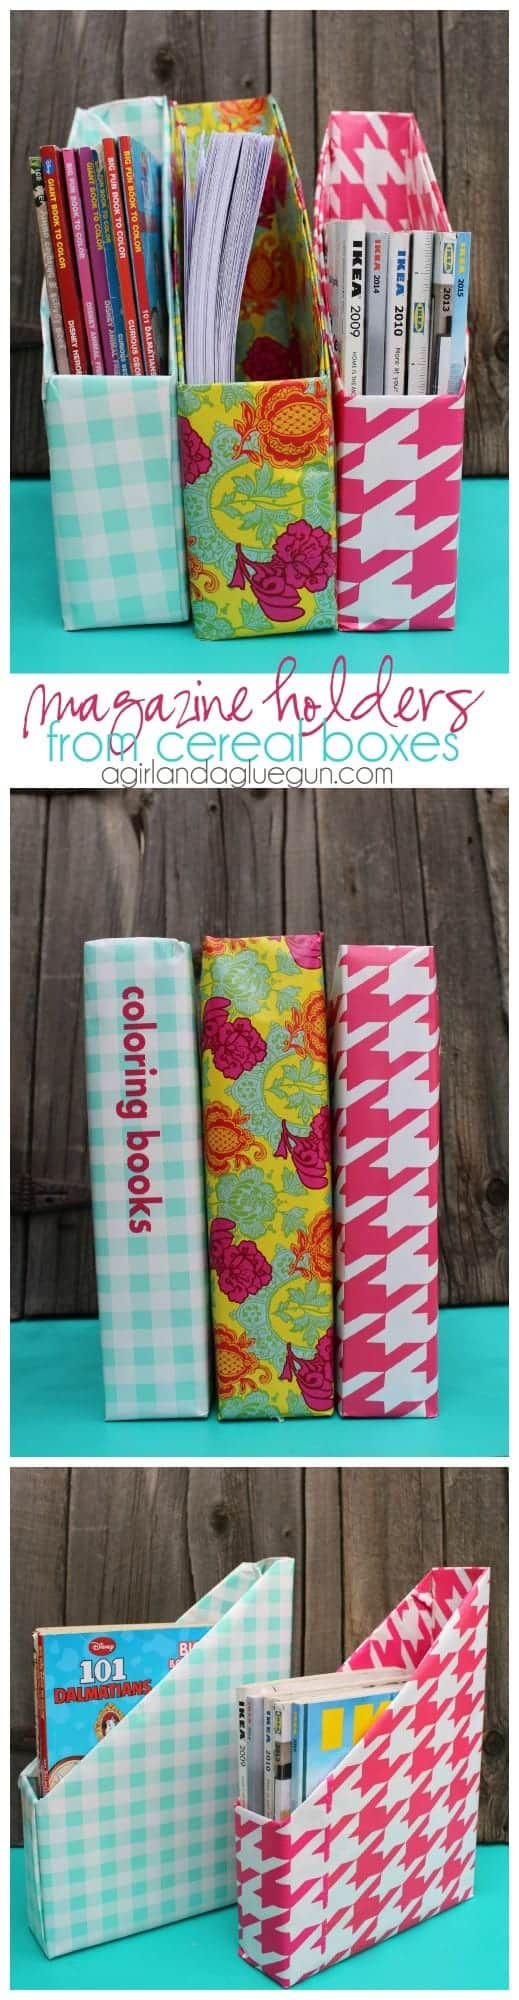 magazine holders from cereal boxes and wrapping paper